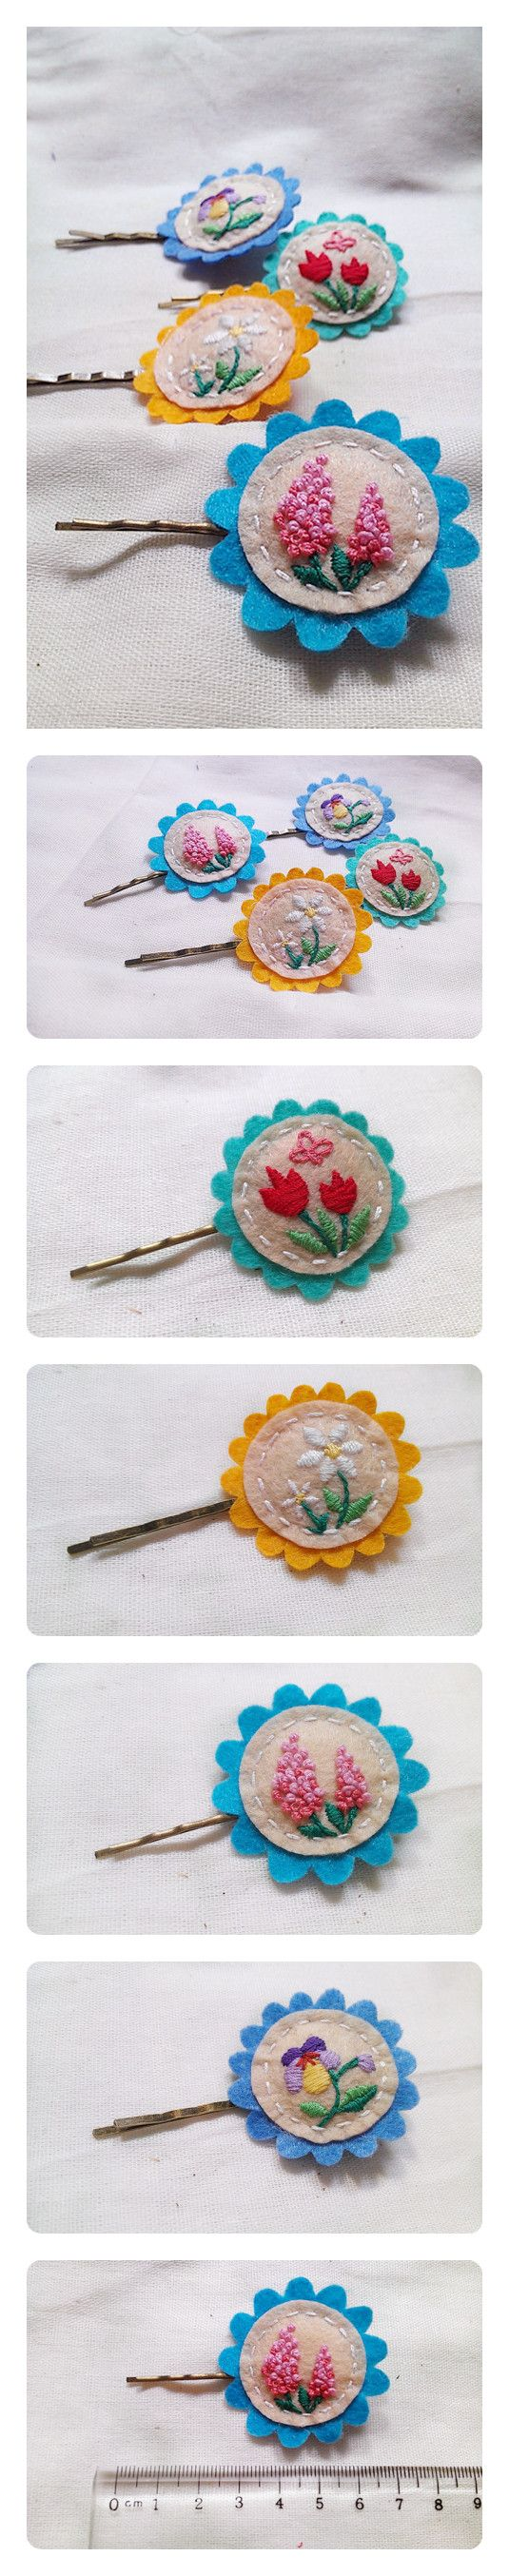 felts hairpins (would be cute as buttons) WHENI HAVE  NOTHING TO DO AND AM BORED, TRY MAKING SOME OF THESE FOR  THE KIDS (LITTLE GIRLS) FOR HAIR PINS